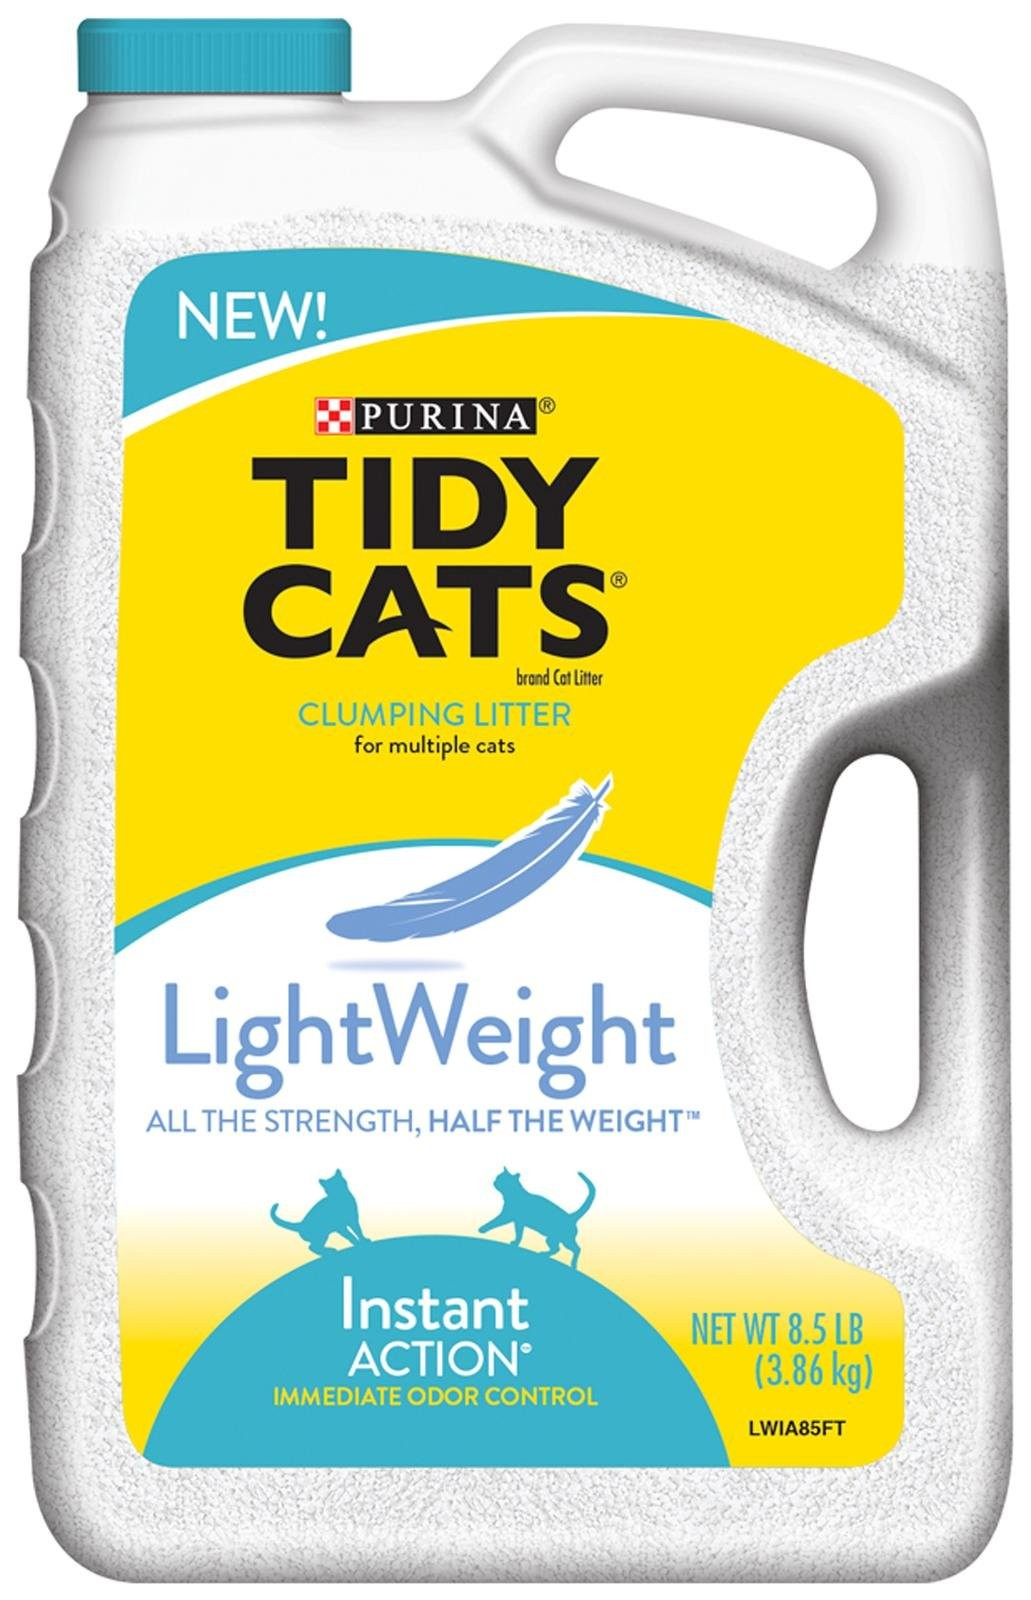 $2.00 off one Purina Tidy Cats Clumping Litter